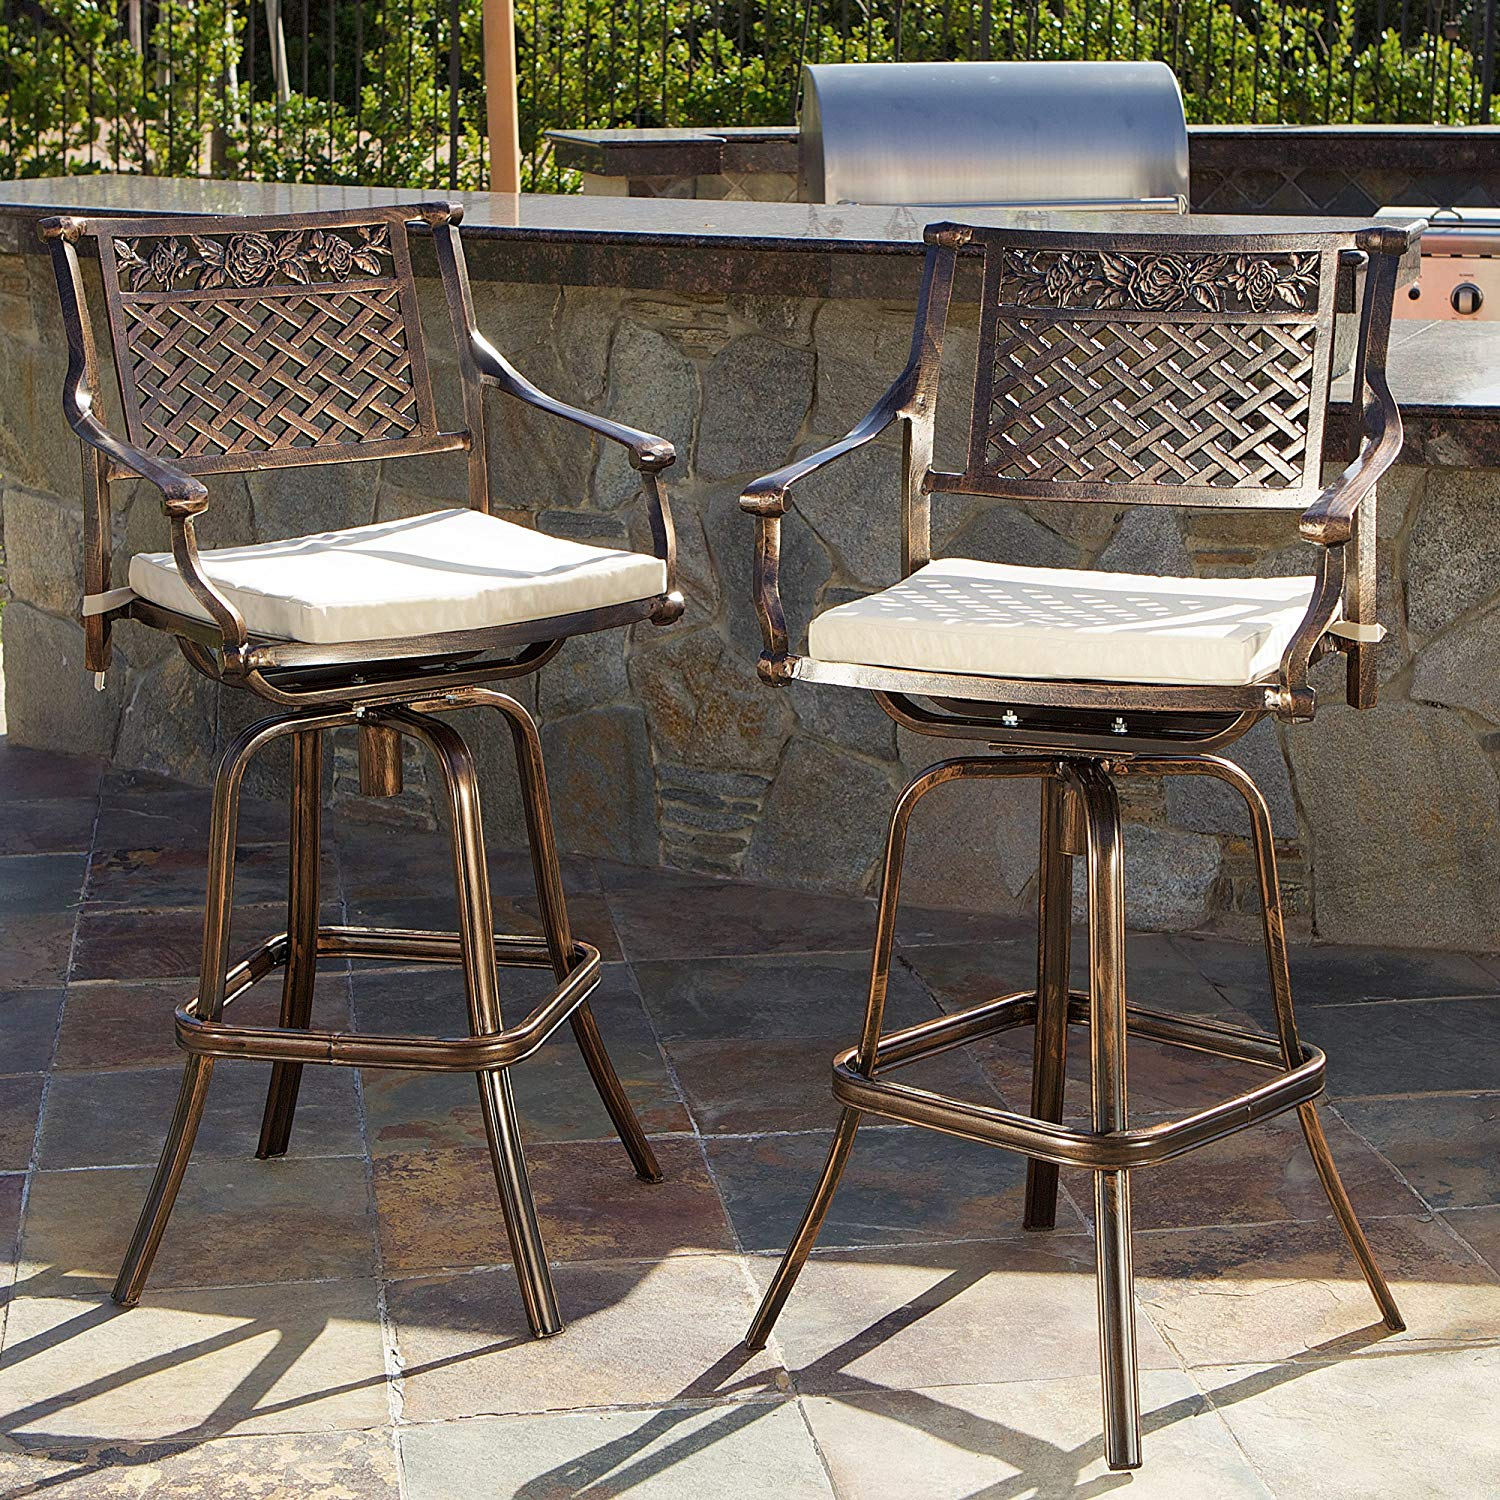 How Outdoor Bar Stools Can Help Get Better Productivity